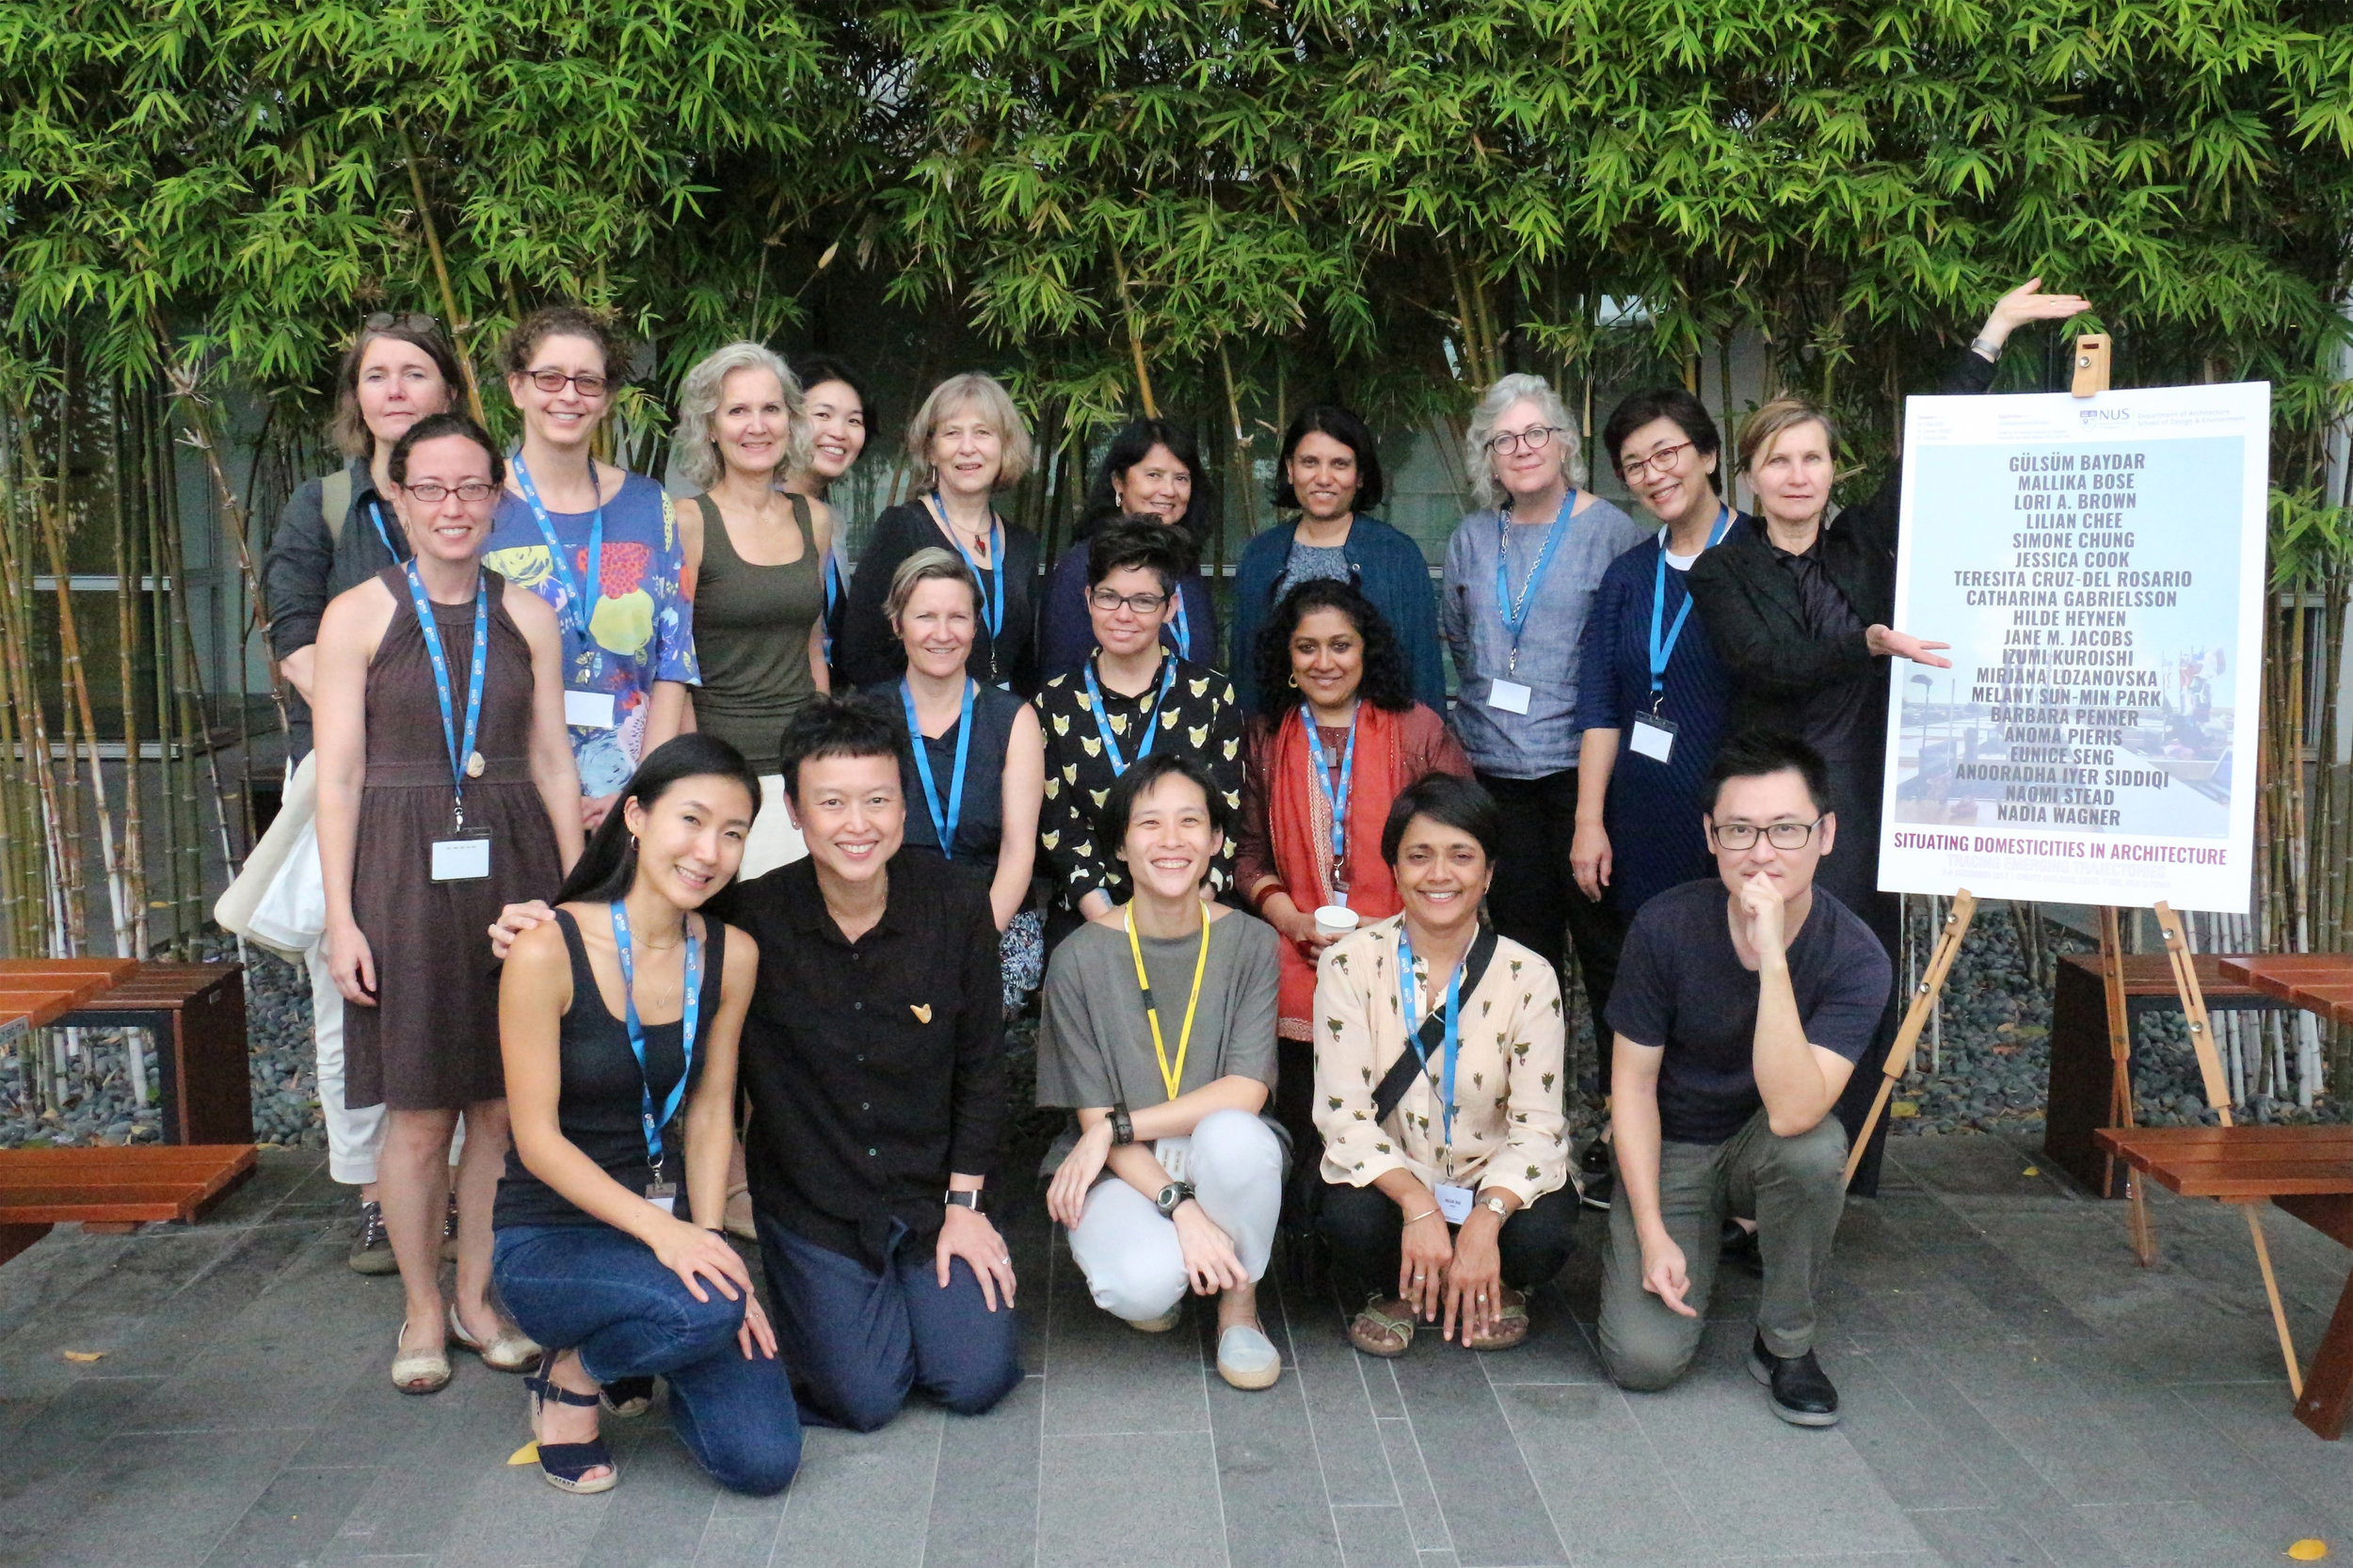 Left to right (front row): Melany Sun-Min Park (Harvard GSD), Lilian Chee (NUS), Simone Chung (NUS), Mallika Bose (Penn State), Lee Kah Wee (NUS)  Left to right (middle row): Jessica Cook (NUS), Lori A. Brown (Syracuse), Naomi Stead (Monash), Anooradha Iyer Siddiqi (Harvard)  Left to right (back row): Catharina Gabrielsson (KTH), Barbara Penner (Bartlett UCL), Gülsüm Baydar (Yaşar), Eunice Seng (Hong Kong), Hilde Heynen (Leuven), Teresita Cruz del-Rosario (Asia Research Institute, NUS), Anoma Pieris (Melbourne), Jane M. Jacobs (Yale-NUS), Izumi Kuroishi (Aoyama Gakuin), Mirjana Lozanovska (Deakin)